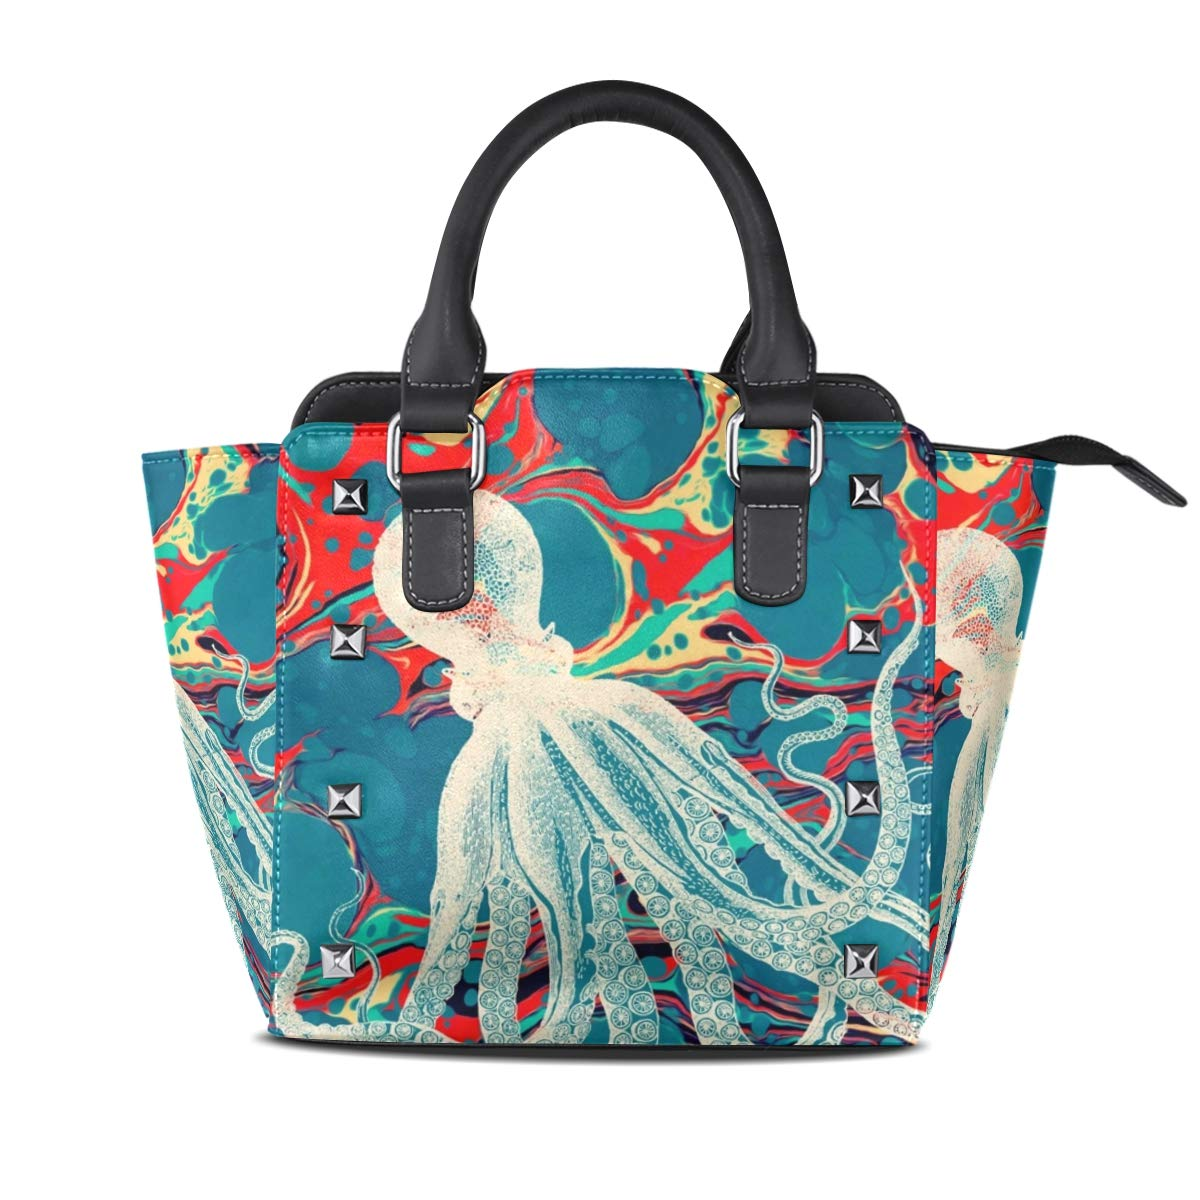 color1 Giant Octopus Women Leather Studded Bags Shoulder Bags Tote Bag Handbags